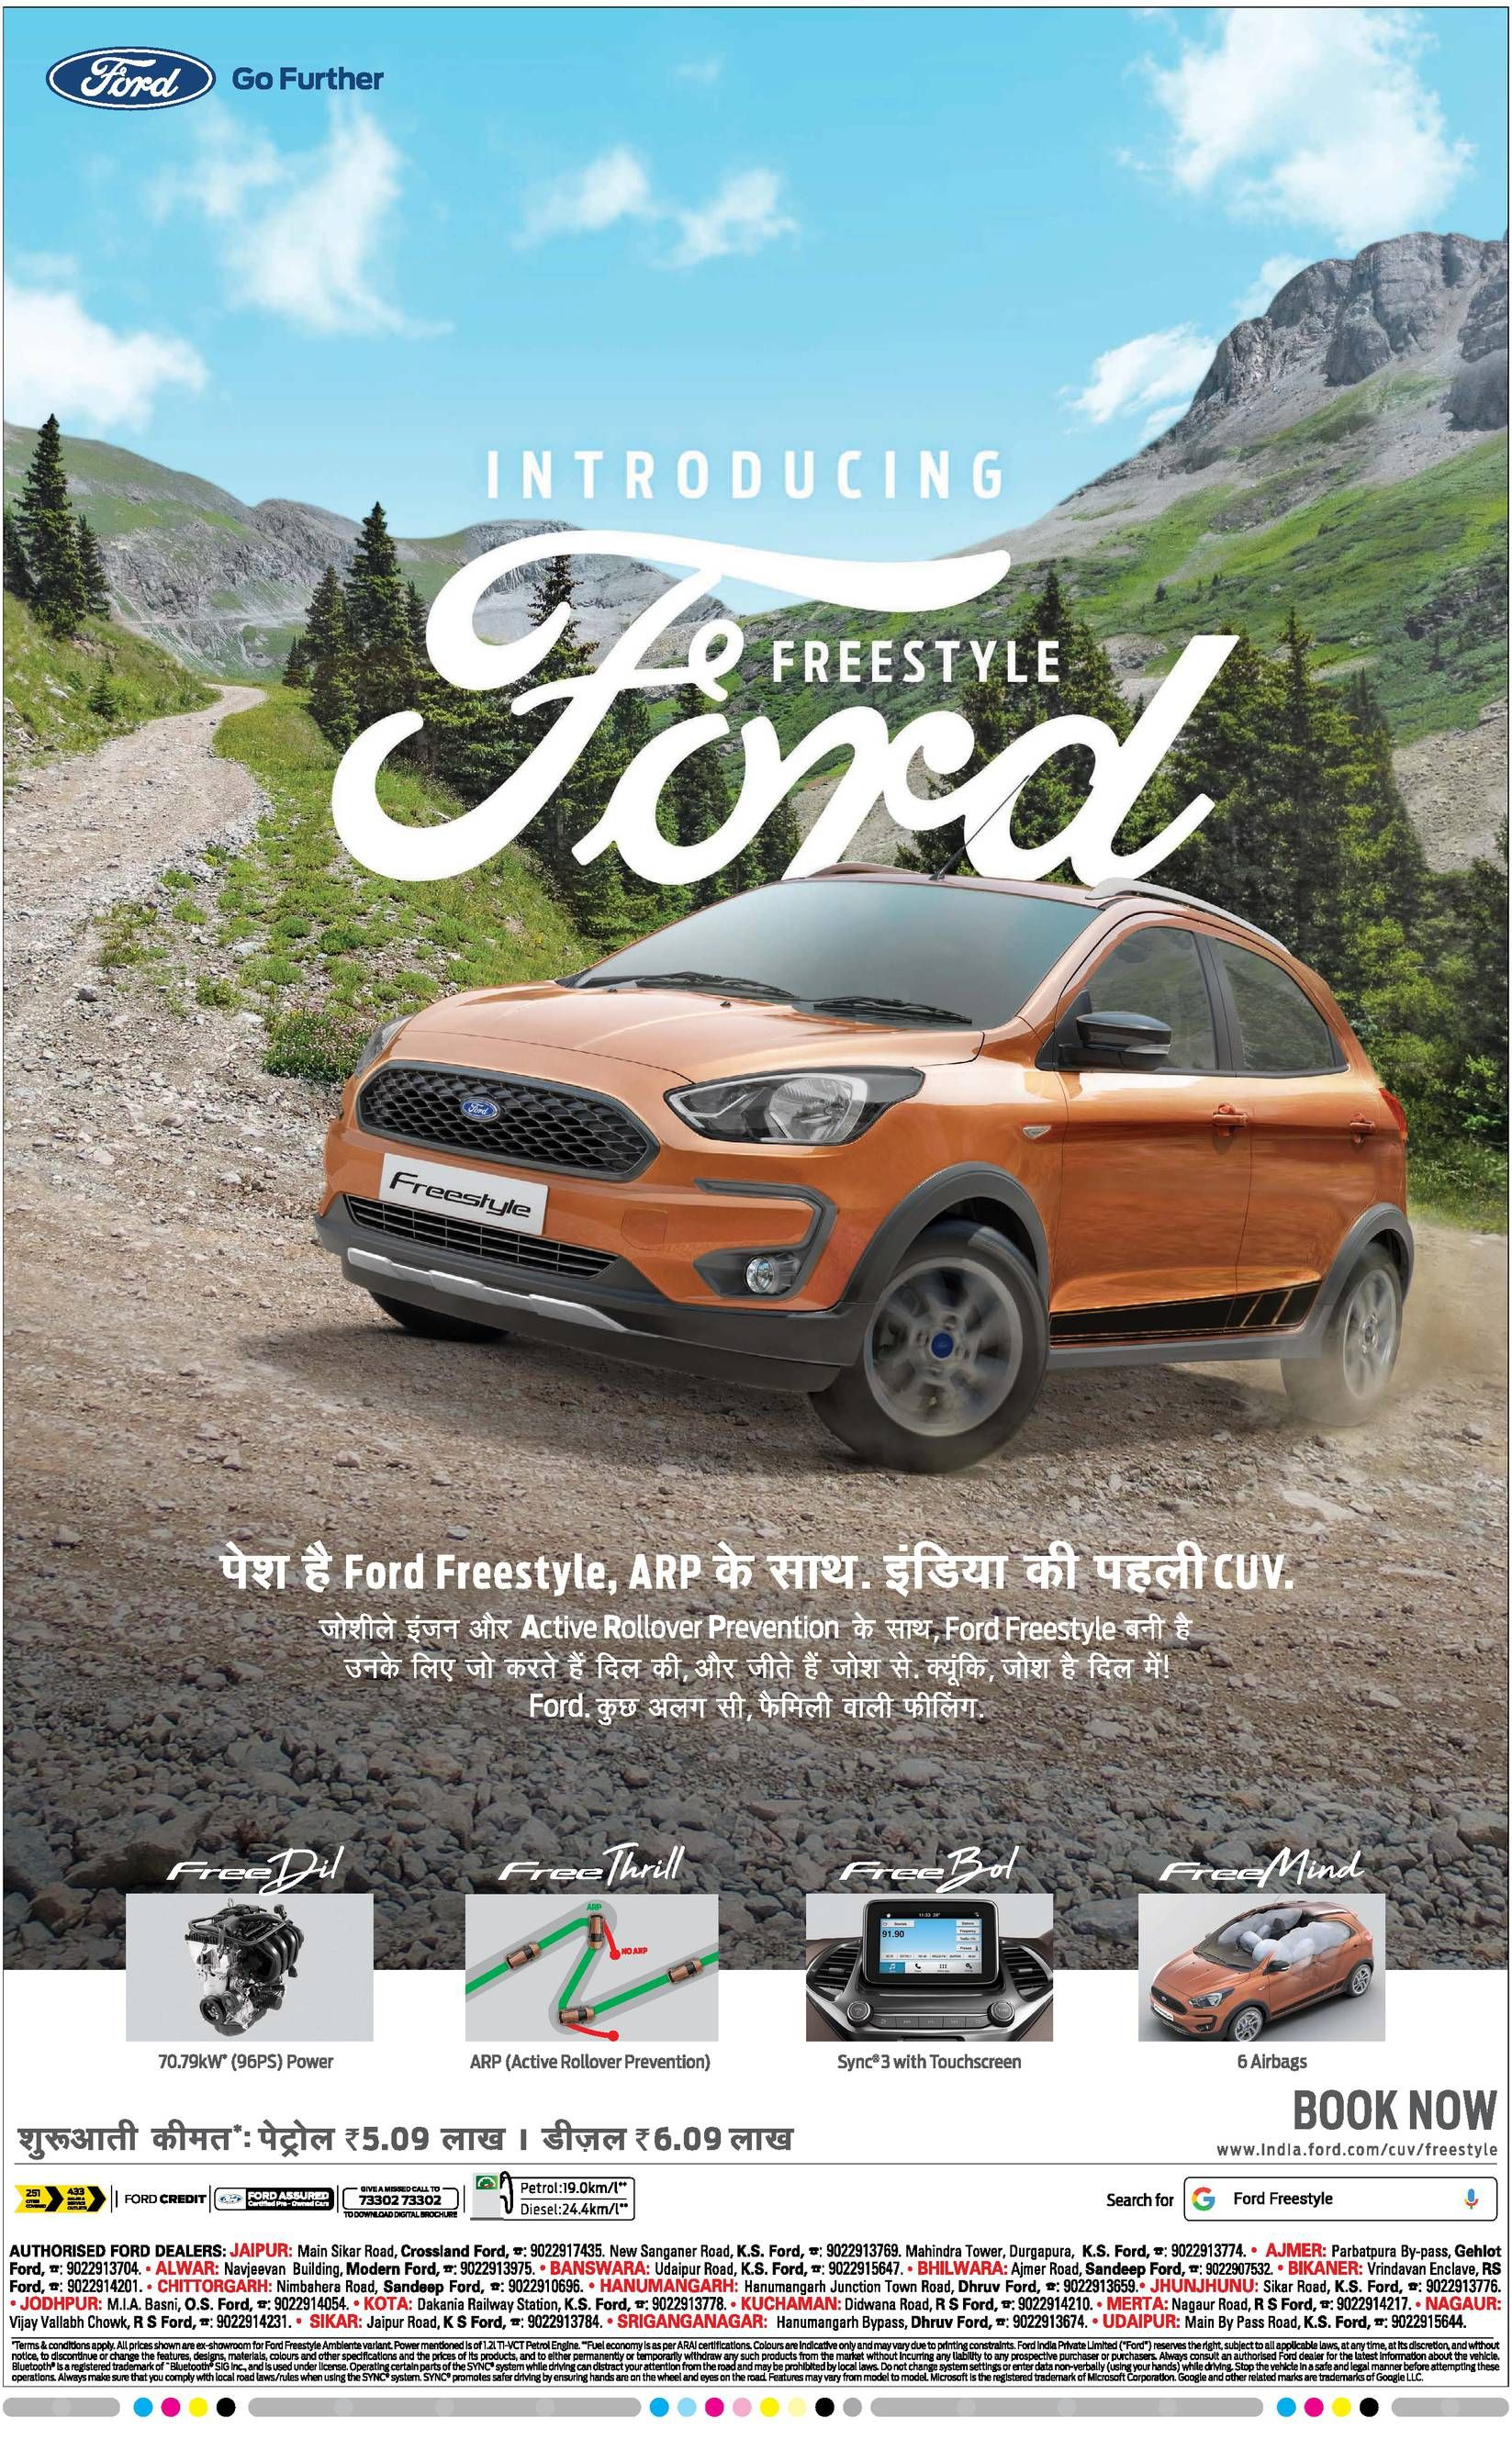 Ford Go Further Introducing Freestyle Ford Ad Car Advertising Design Car Advertising Car Print Ads